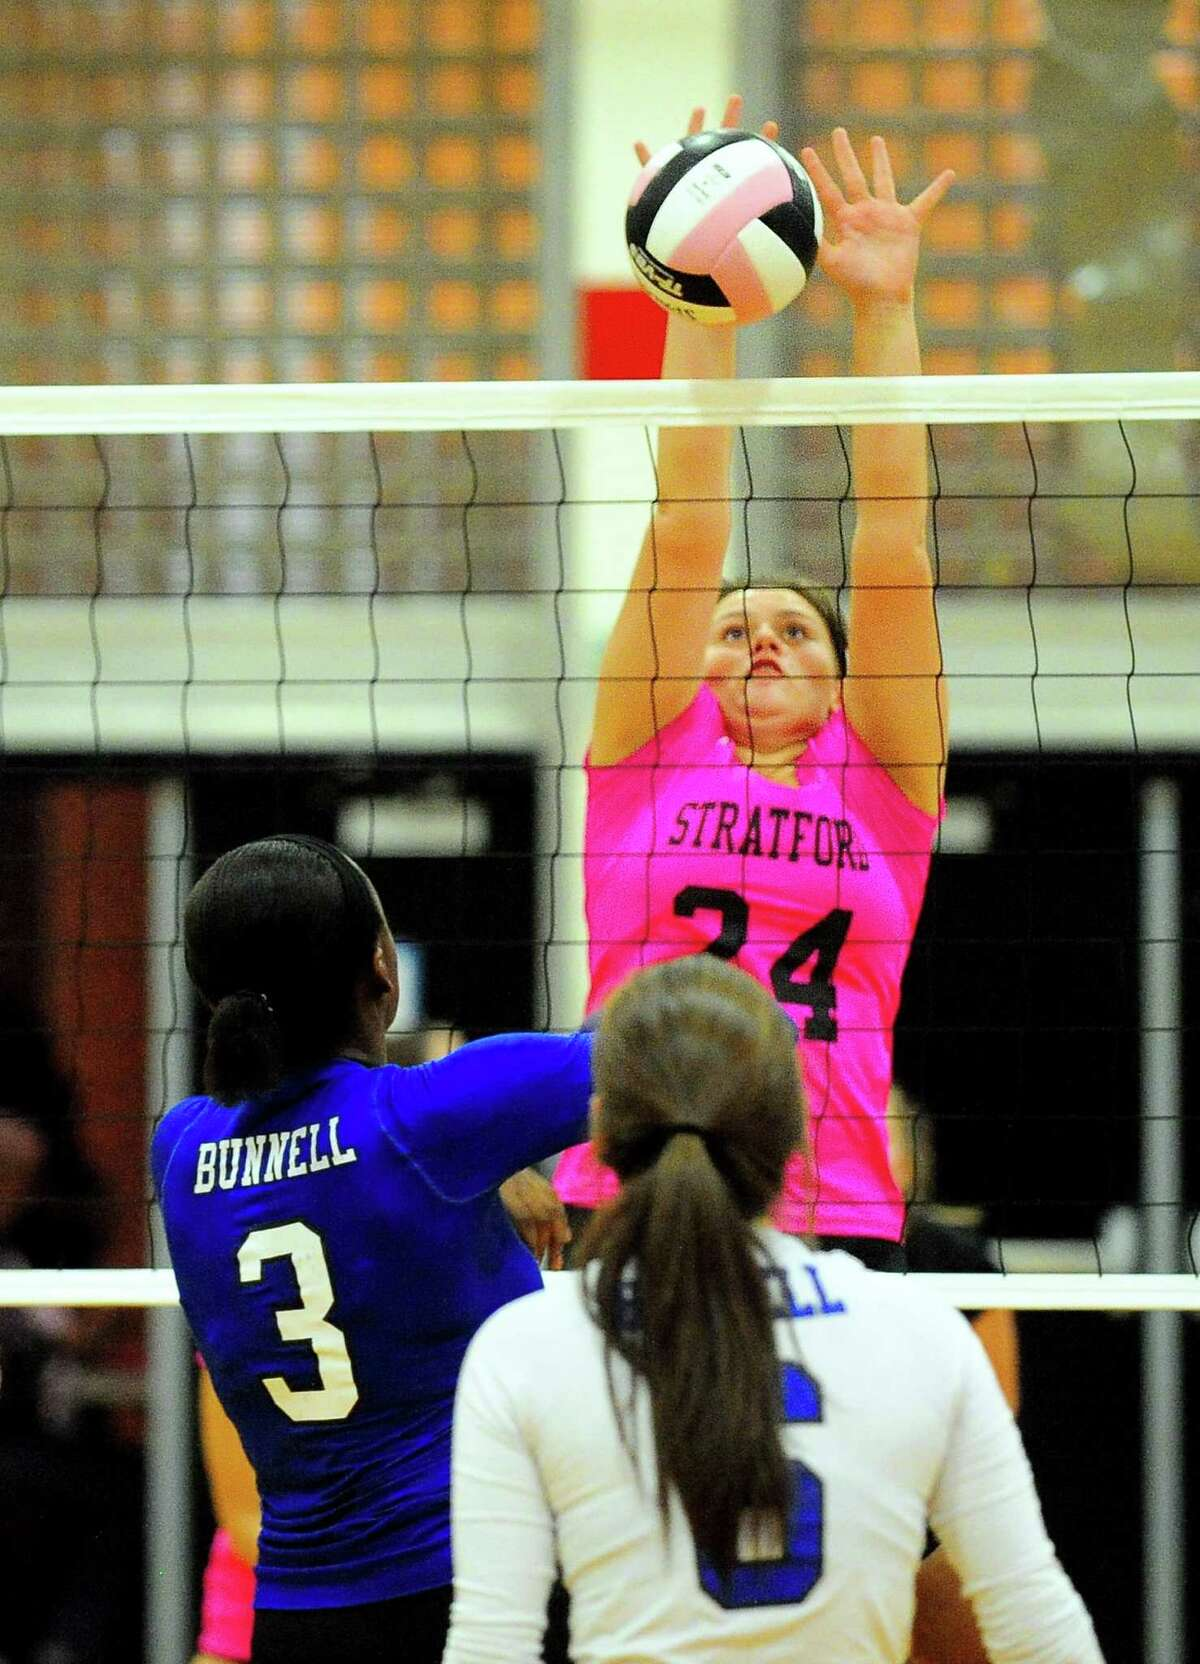 Stratford's Samantha Carbone blocks a spike by Bunnell's Kayla Sokunle during girls volleyball action in Stratford, Conn. on Wednesday, Oct. 4, 2017.